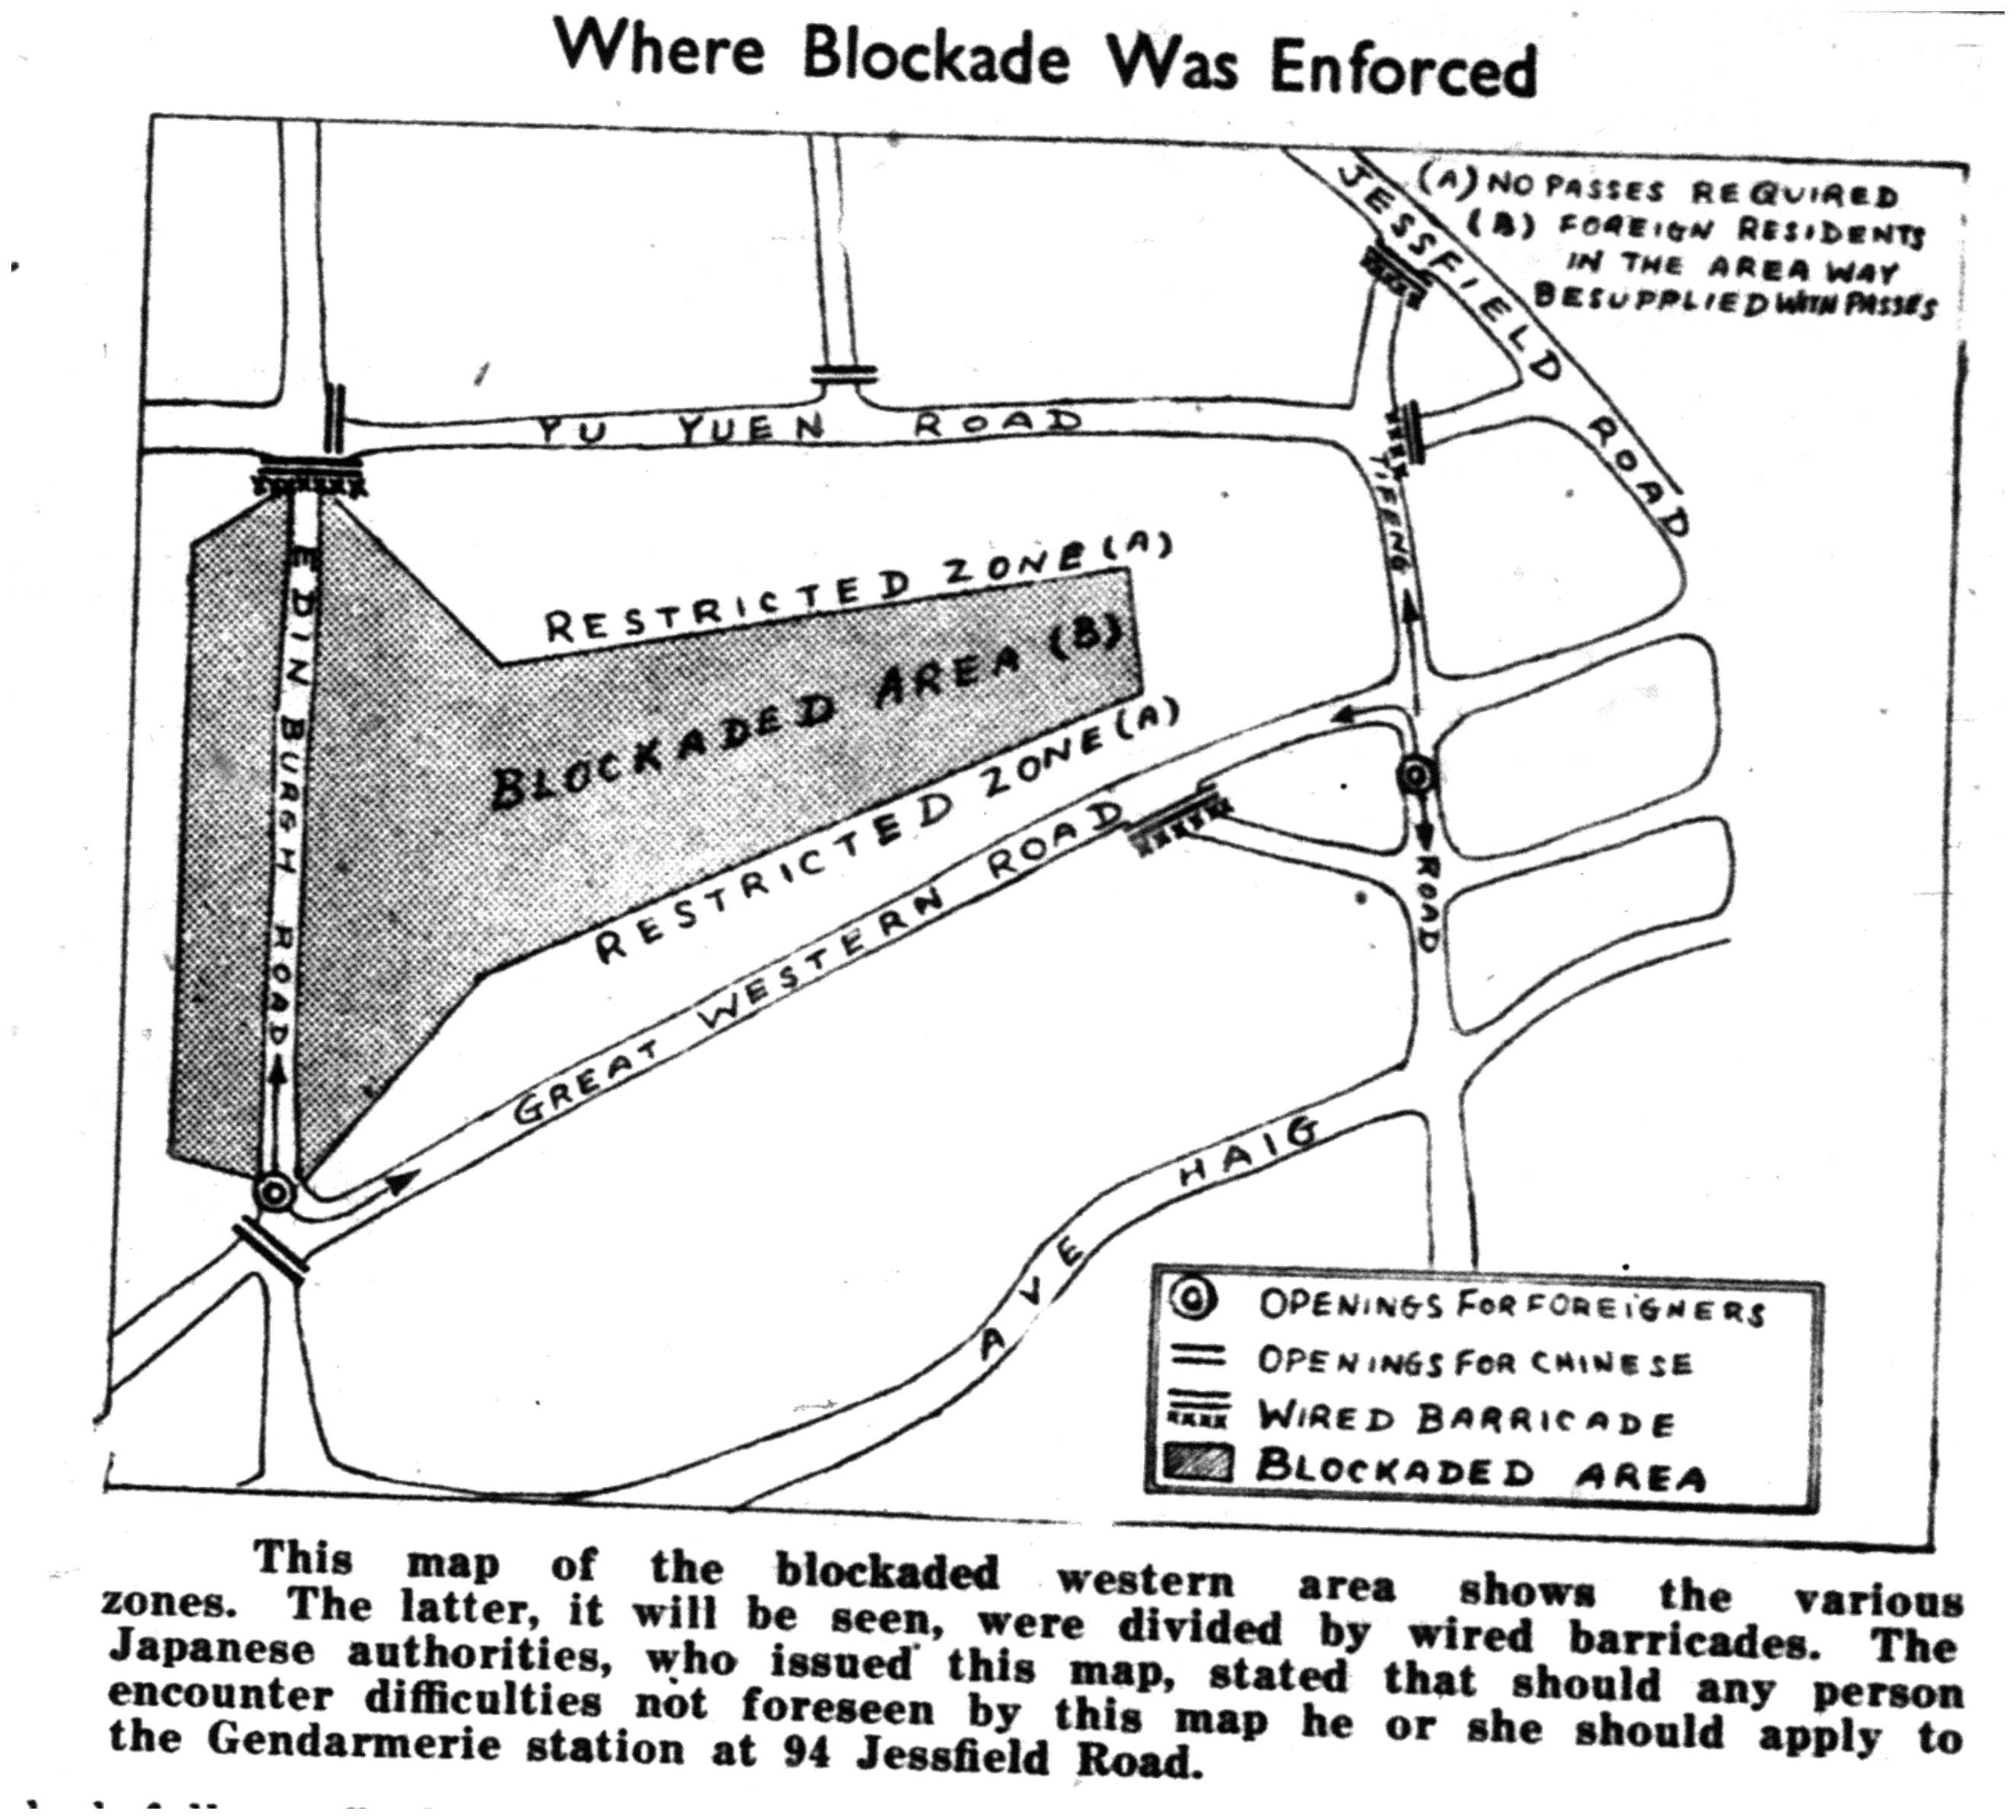 Badlands-blockade-zone-map---CWR-14-Dec-1940.jpg